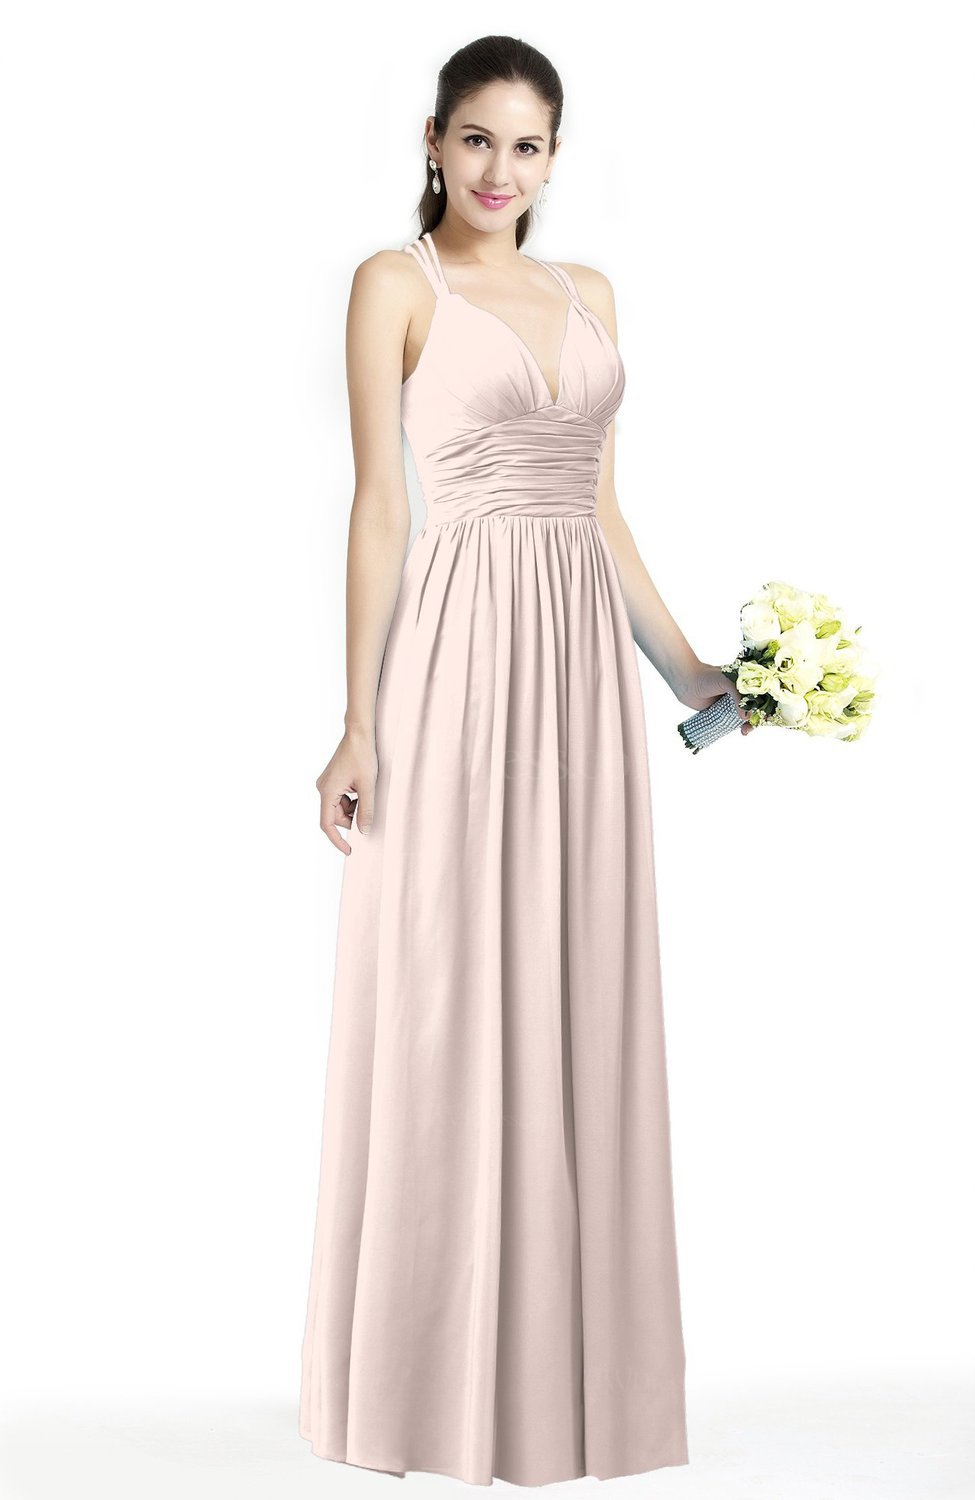 Simple Plus Size Wedding Dresses.Silver Peony Simple Spaghetti Sleeveless Chiffon Sash Plus Size Bridesmaid Dresses